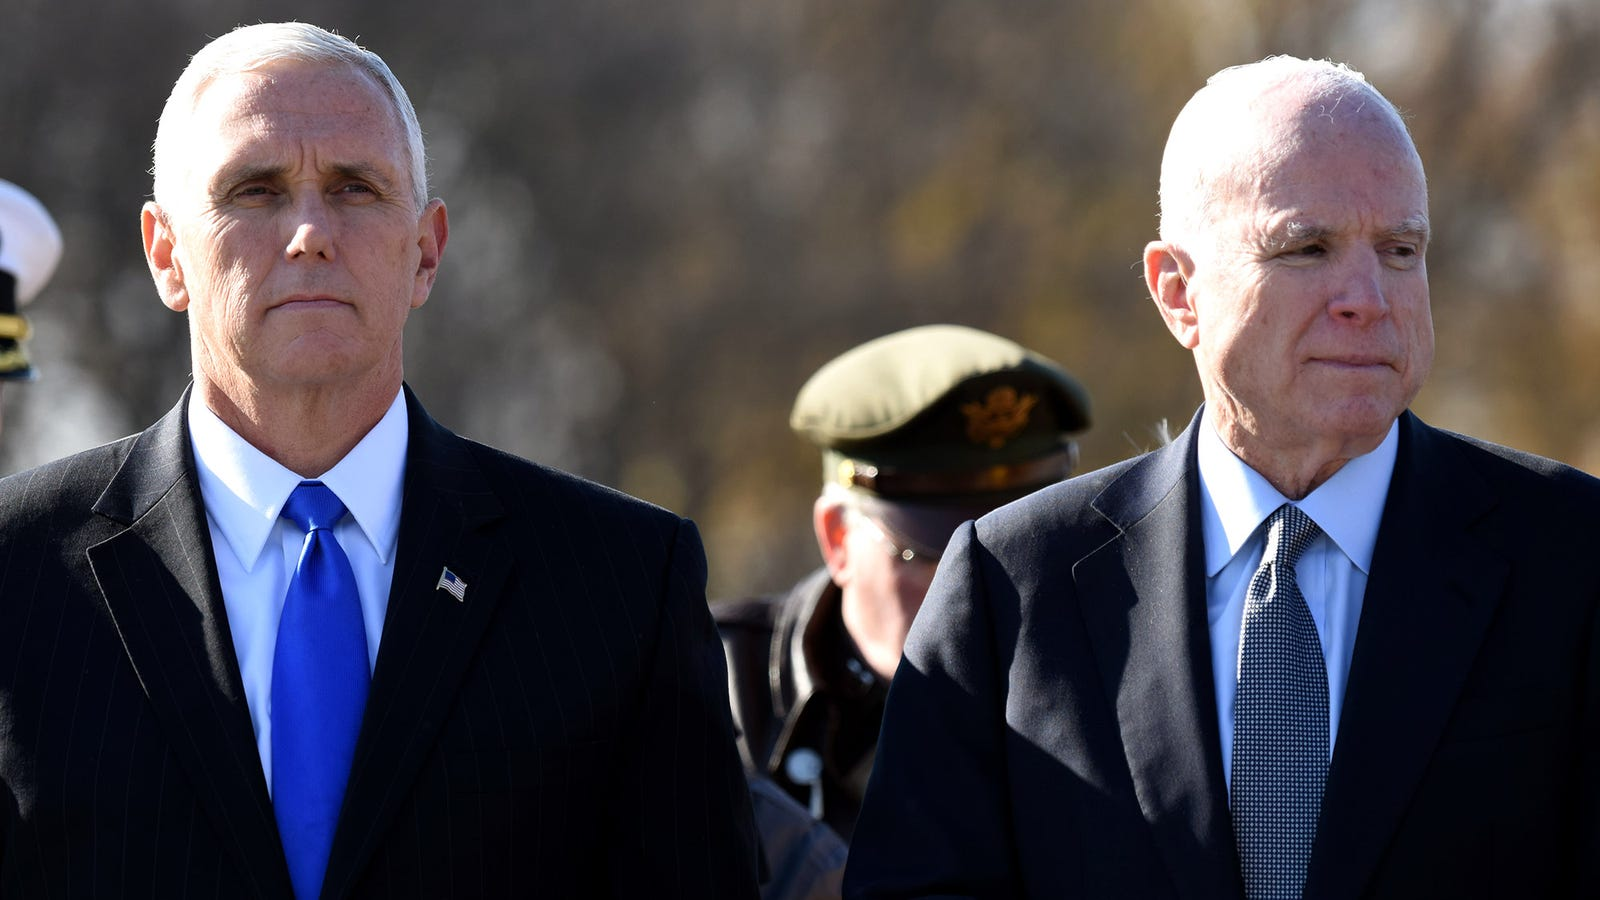 Oh God, What Happened Last Night? Says Groggy Mike Pence